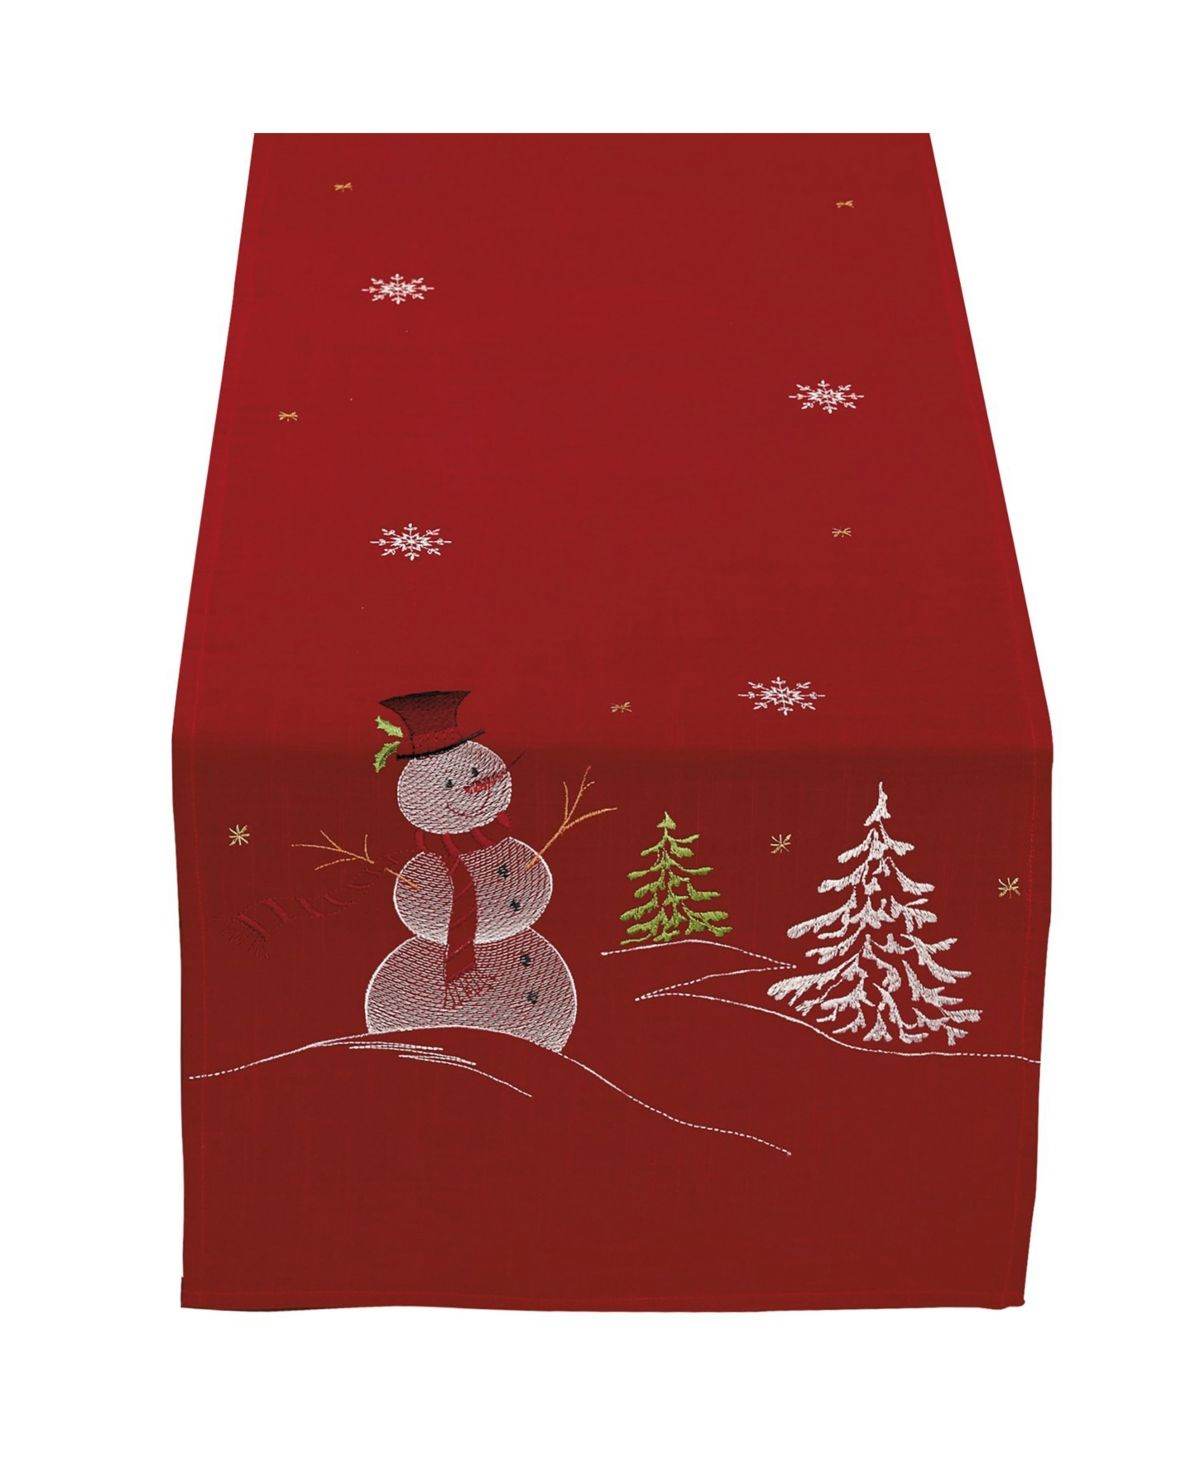 Design Imports Embroidered Snowman Table Runner Reviews Table Linens Dining Macy S In 2020 Embroidered Table Runner Holiday Table Runner Christmas Table Runner